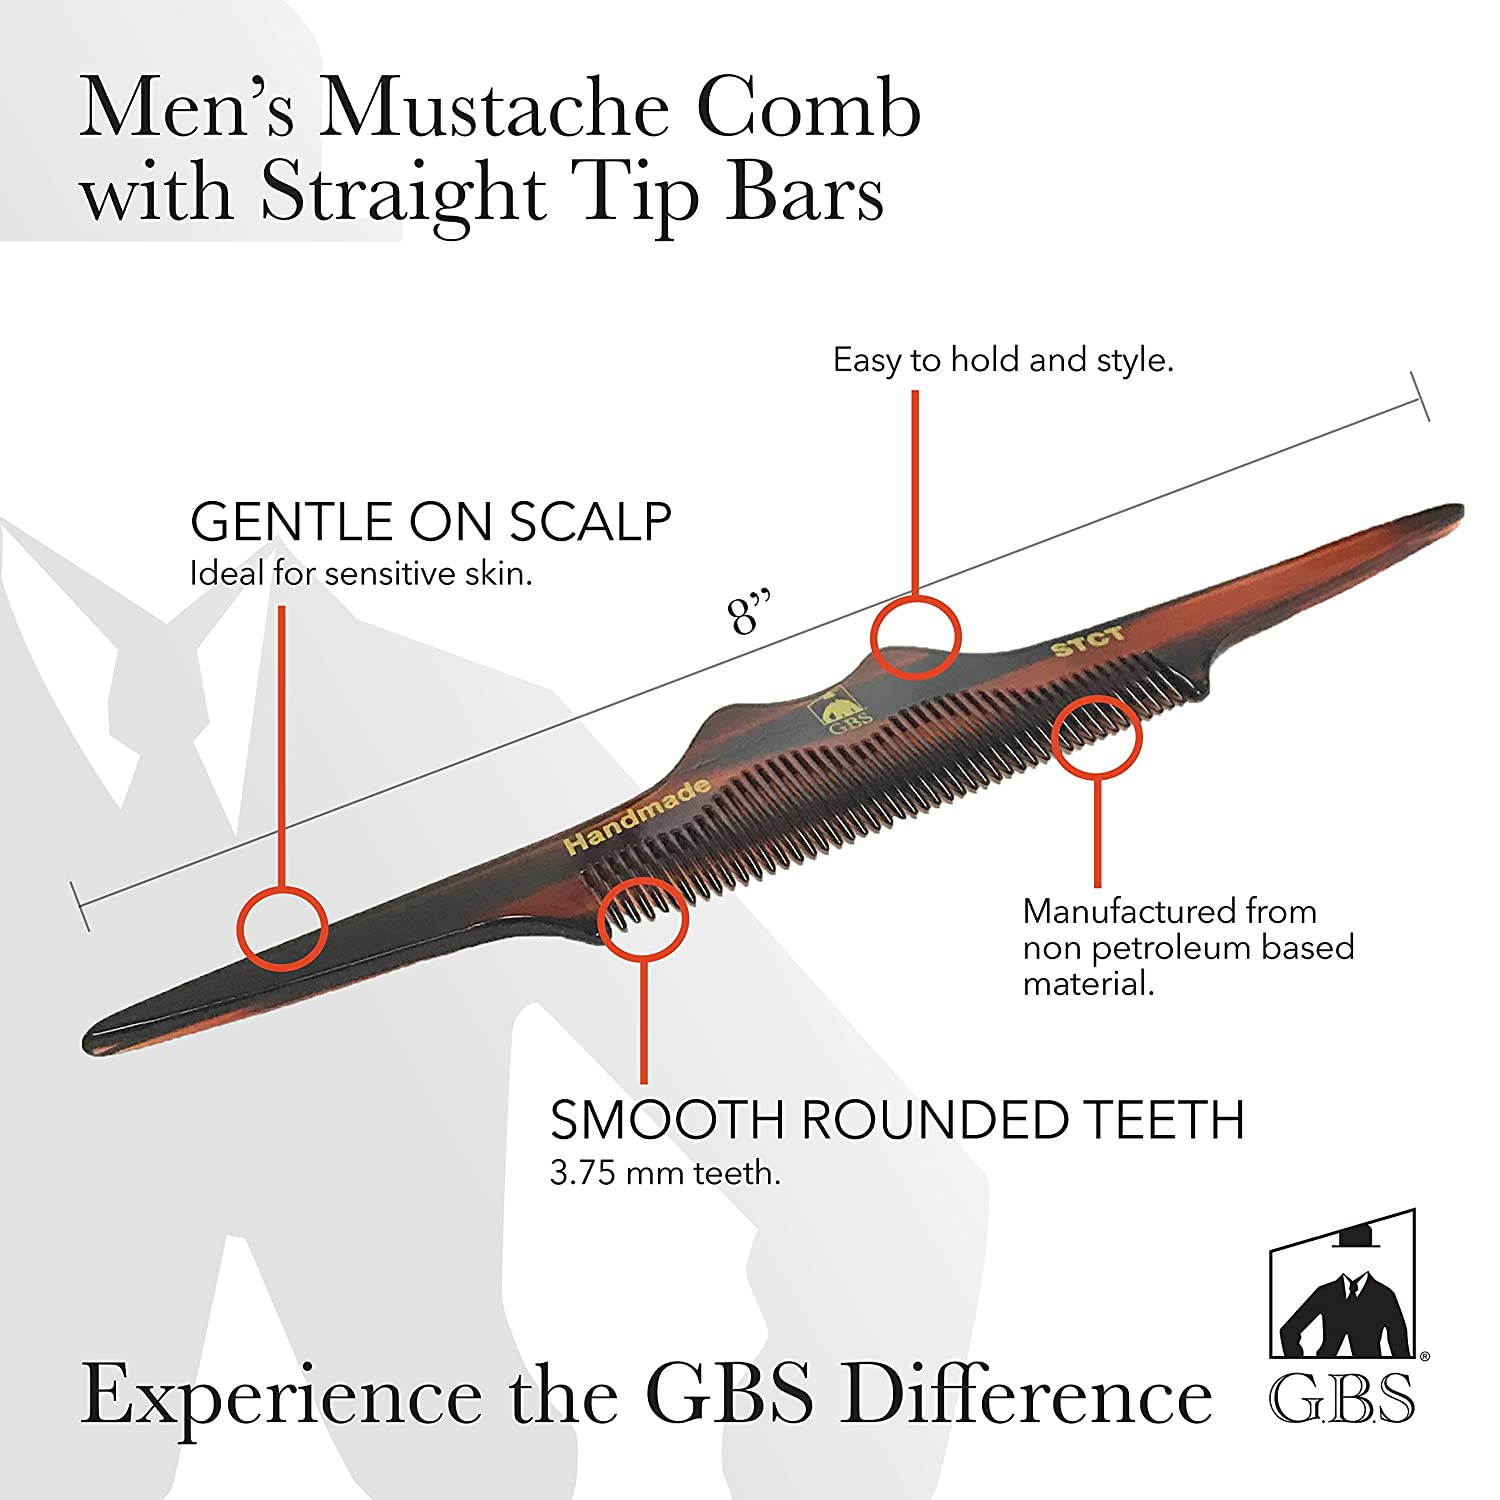 Mens Mustache Comb with Straight Tip Bars - Easy to Hold and Style GBS